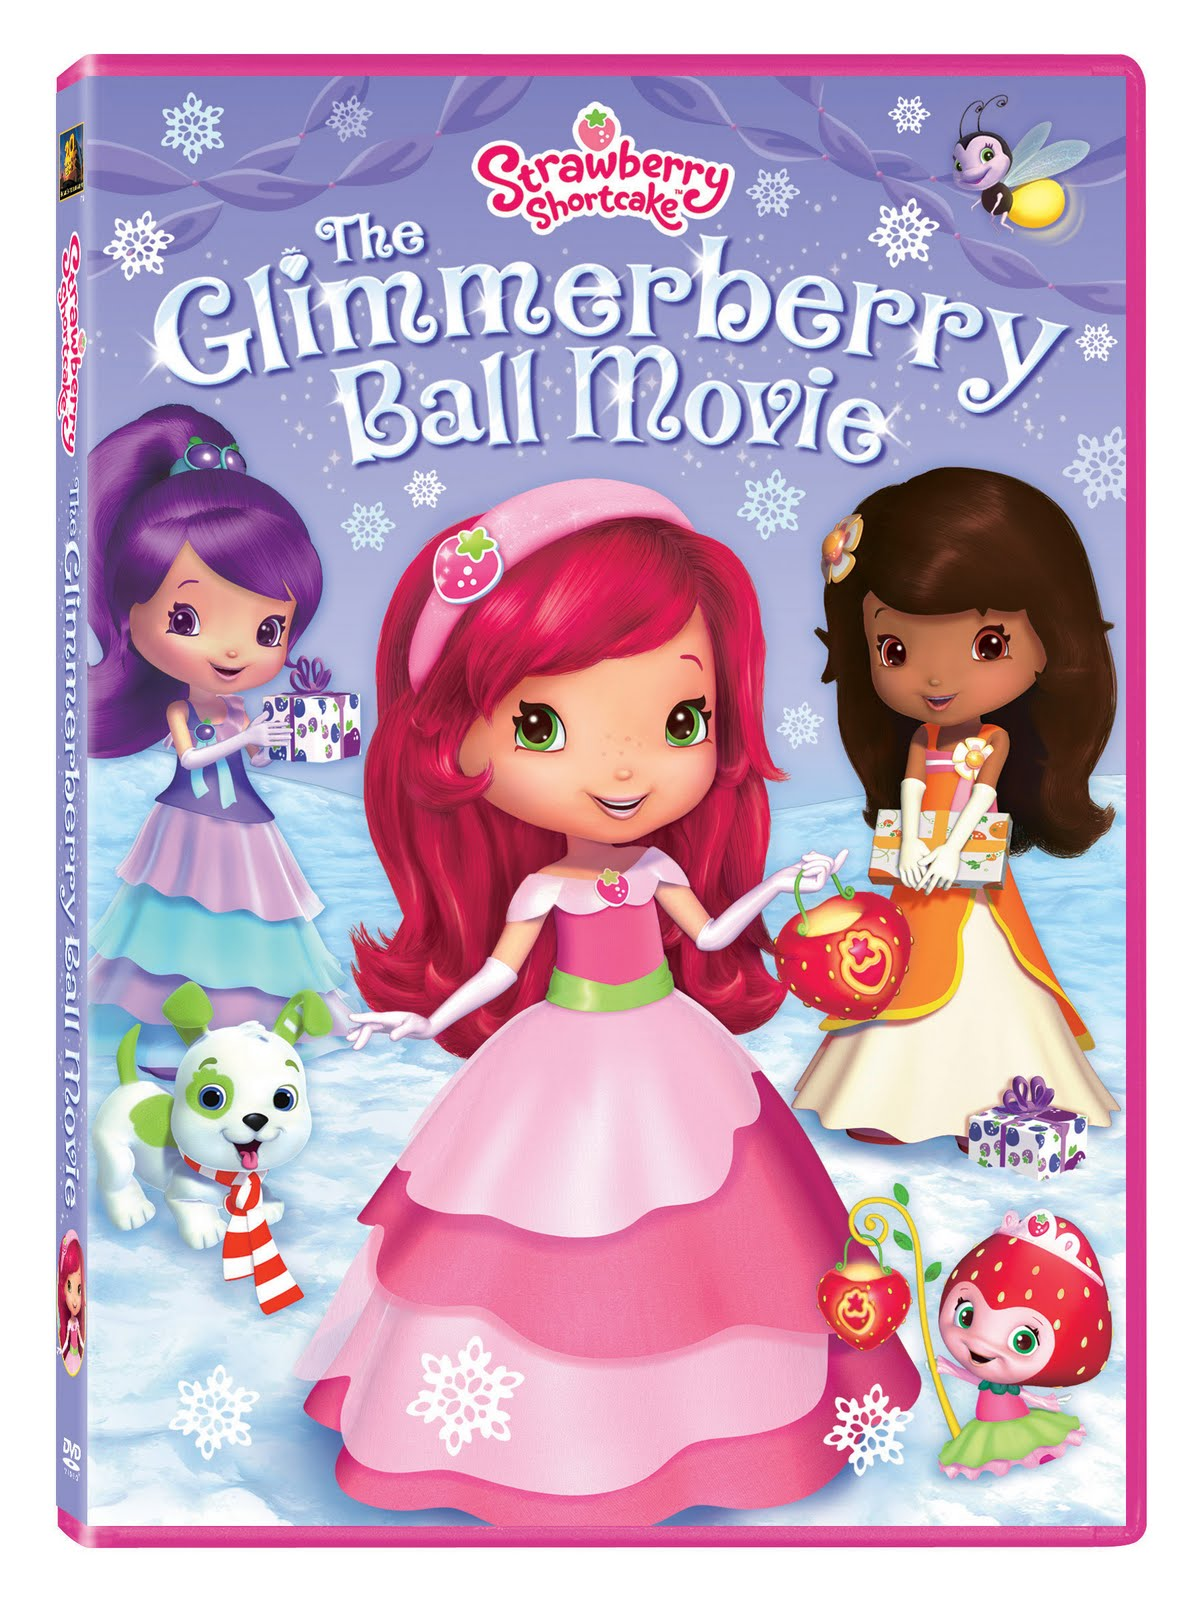 Jam Movie Reviews Jam Reviews Strawberry Shortcake The